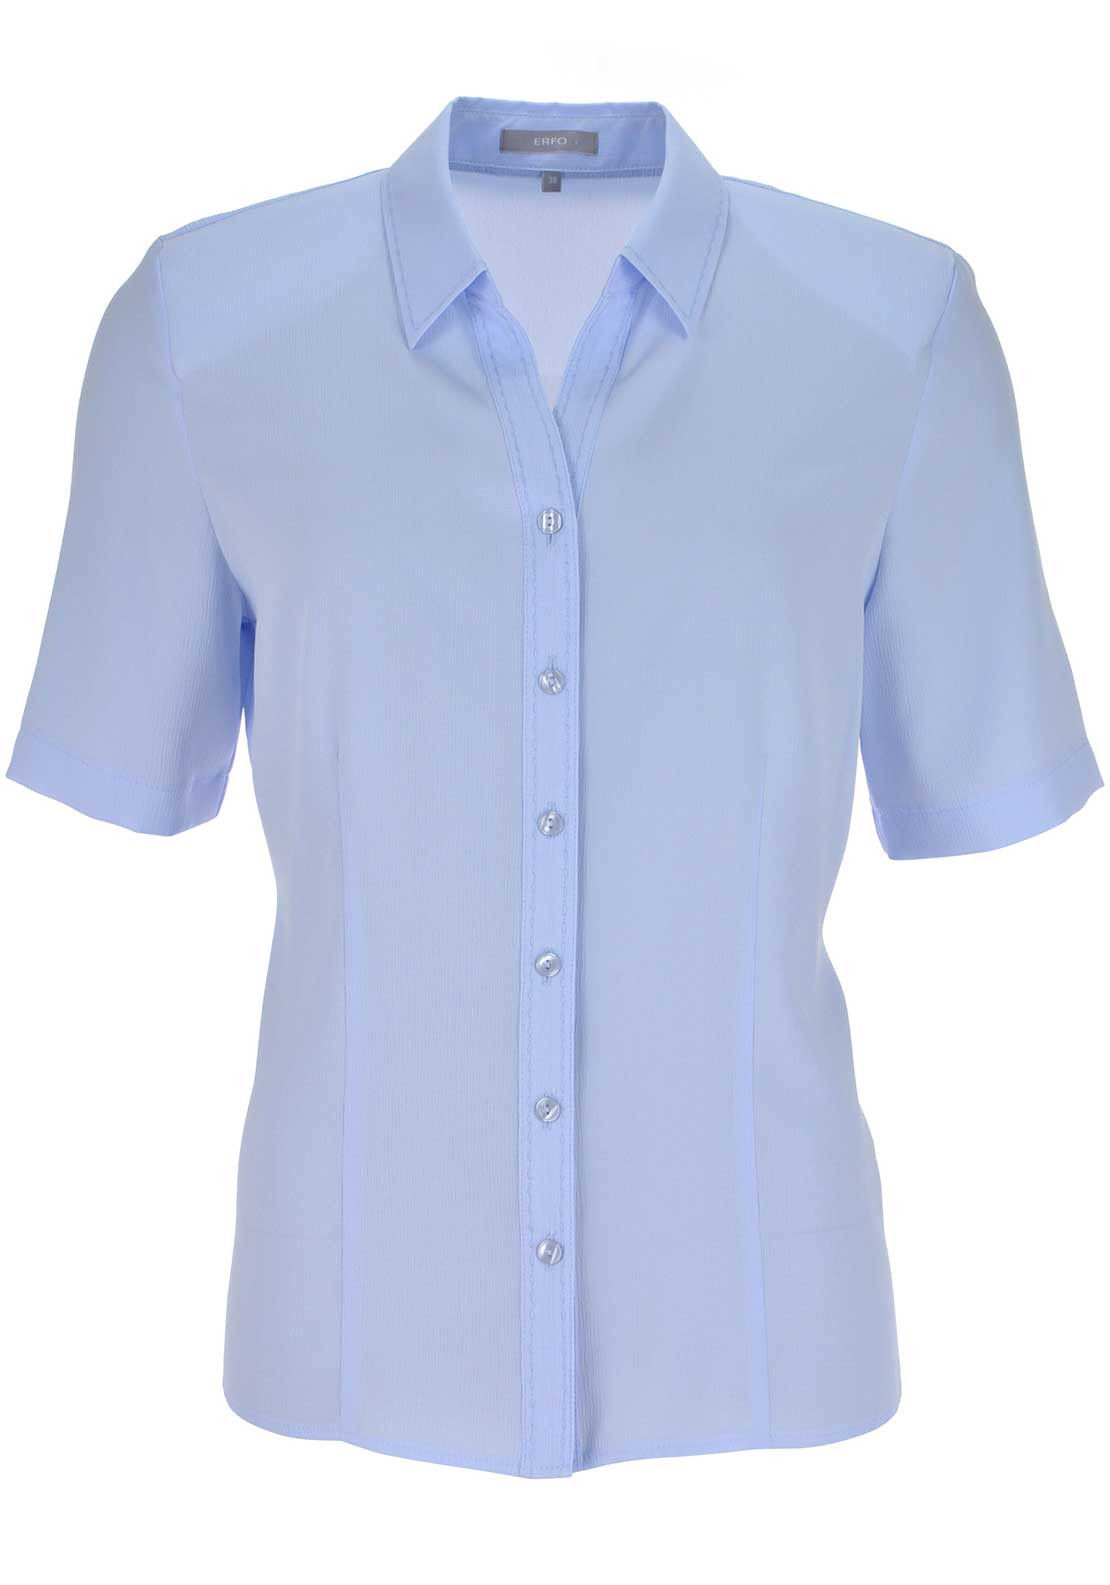 ERFO Textured Short Sleeve V-Neck Blouse, Pale Blue